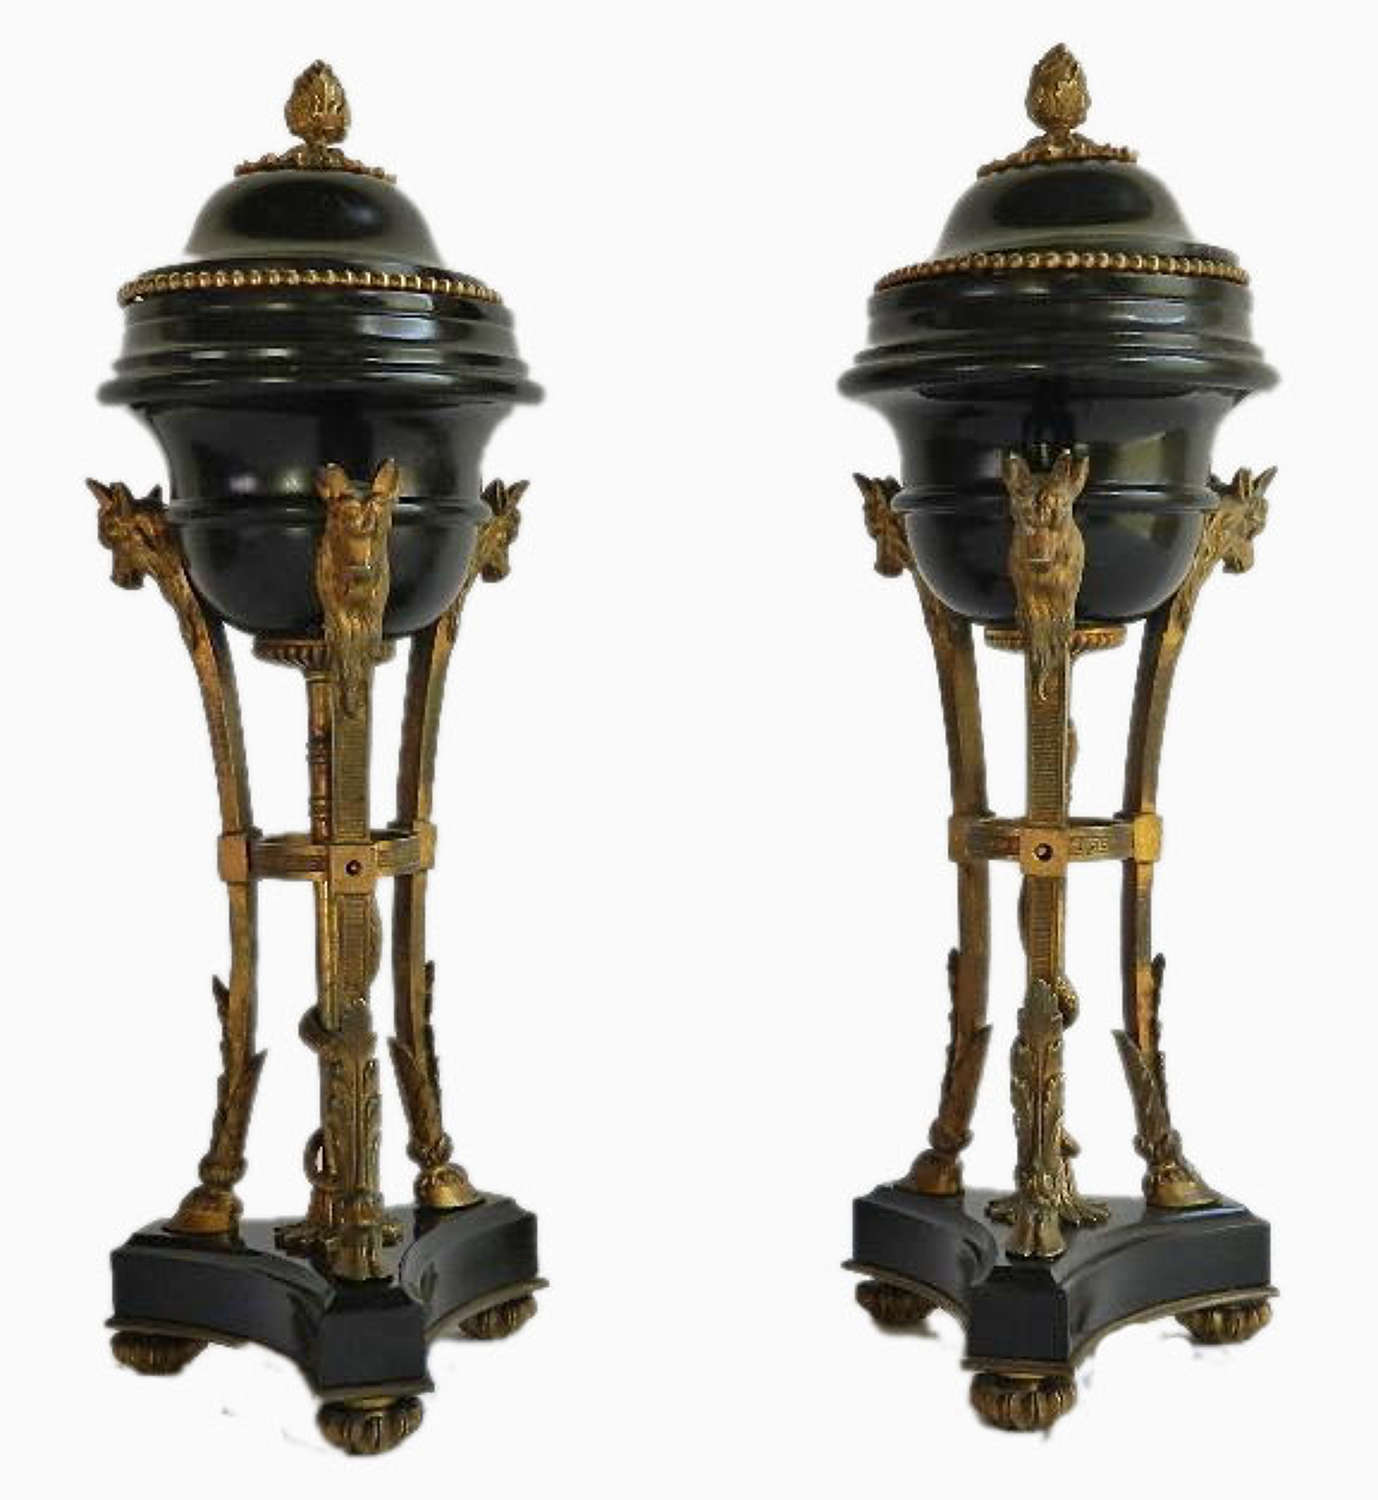 Pair of Second Empire Napoleon French Ormolu Bronze mounted Urns Cassolettes c1860